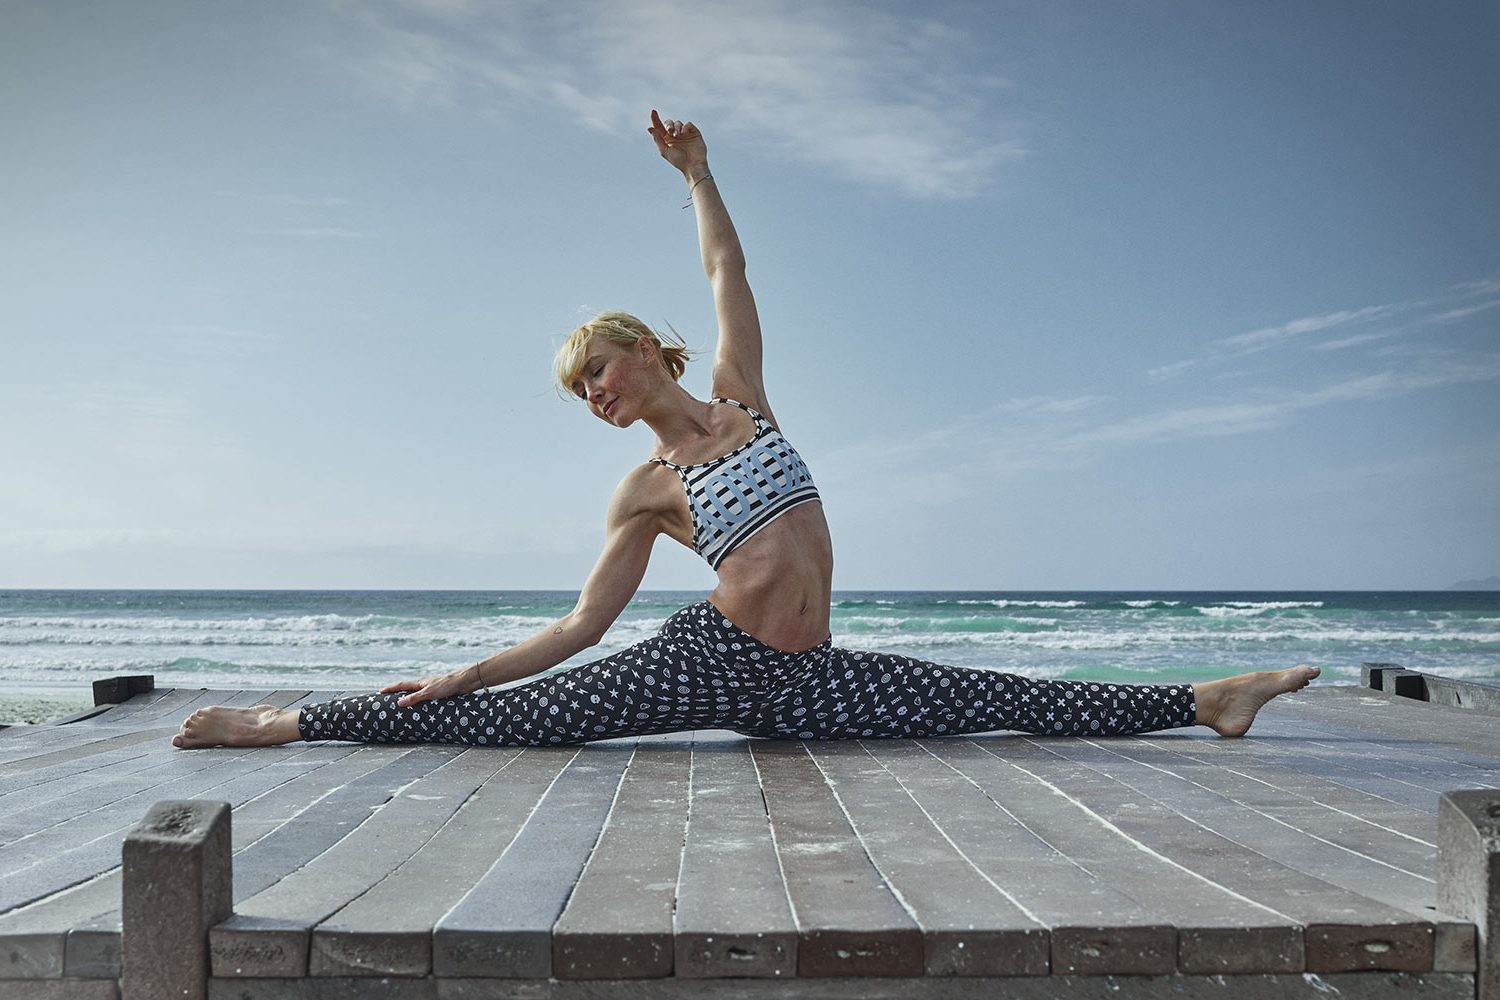 Astrid M Obert Photography presents YOGALIEBE by Anna Kleb